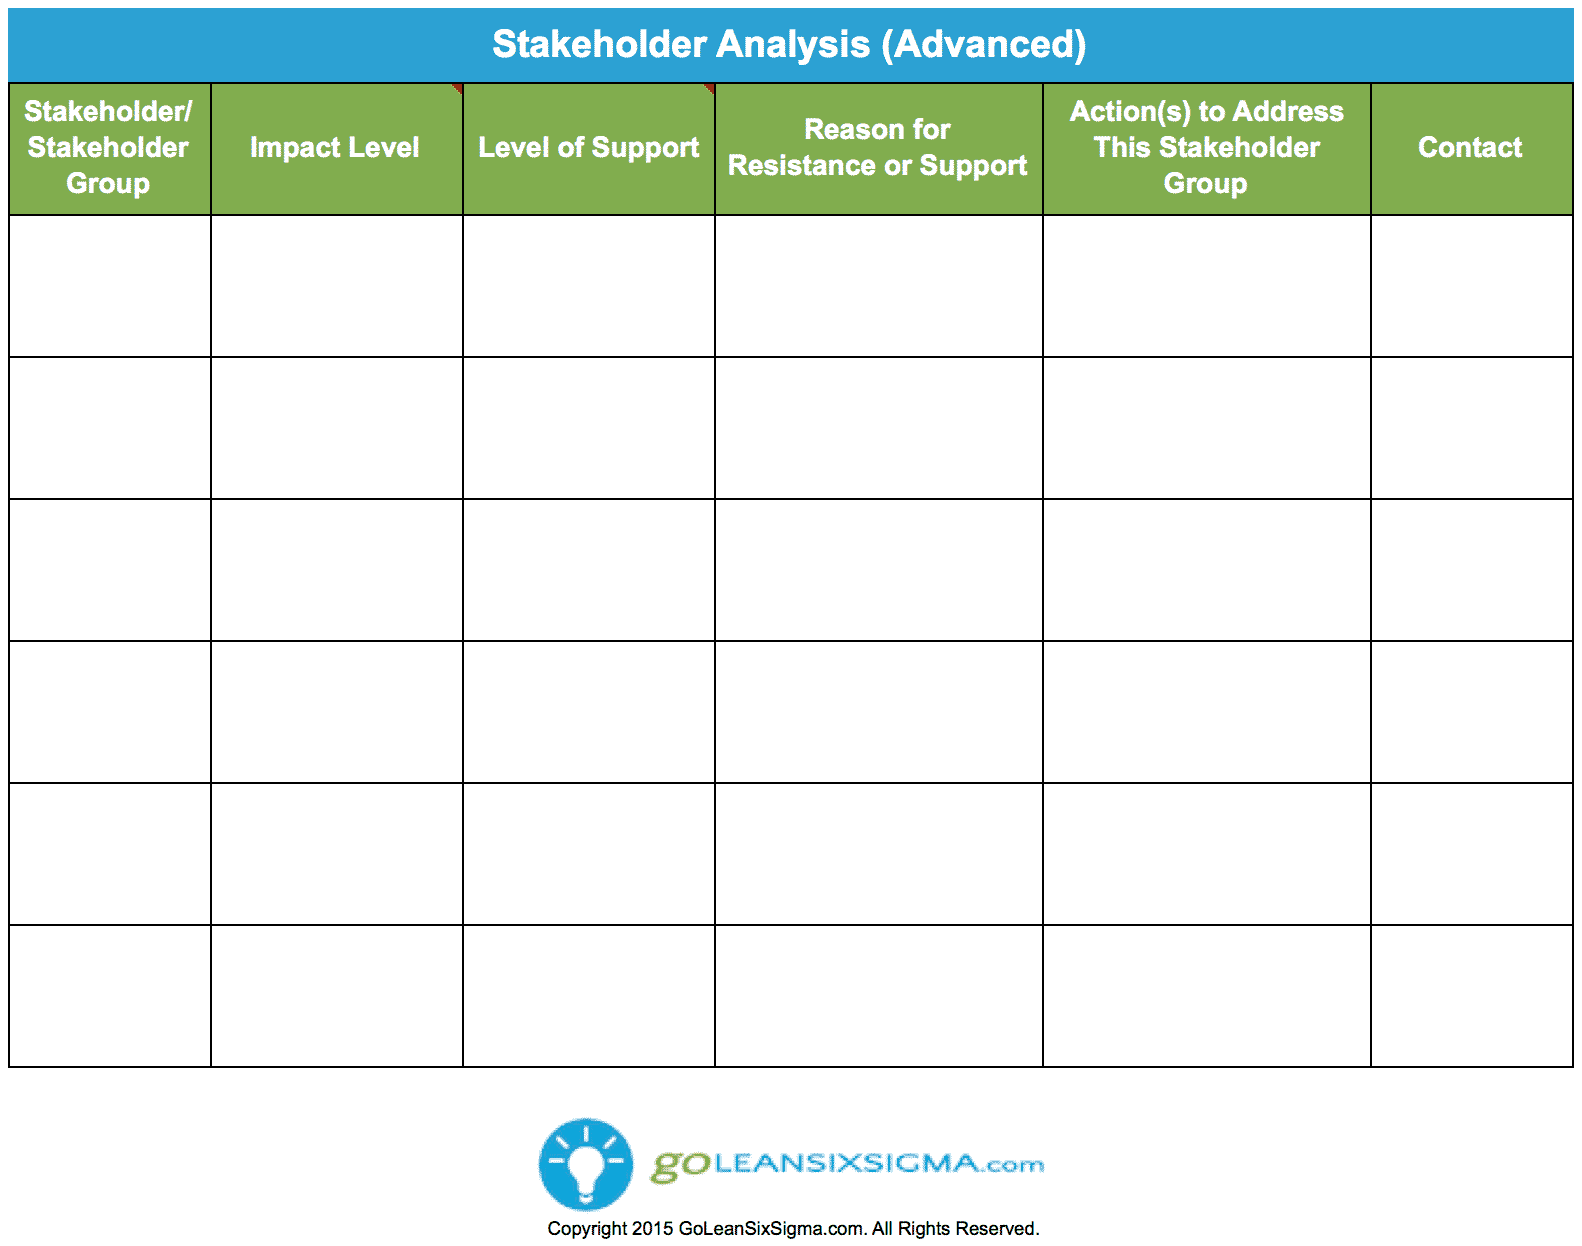 Stakeholder Analysis (Advanced) - GoLeanSixSigma.com